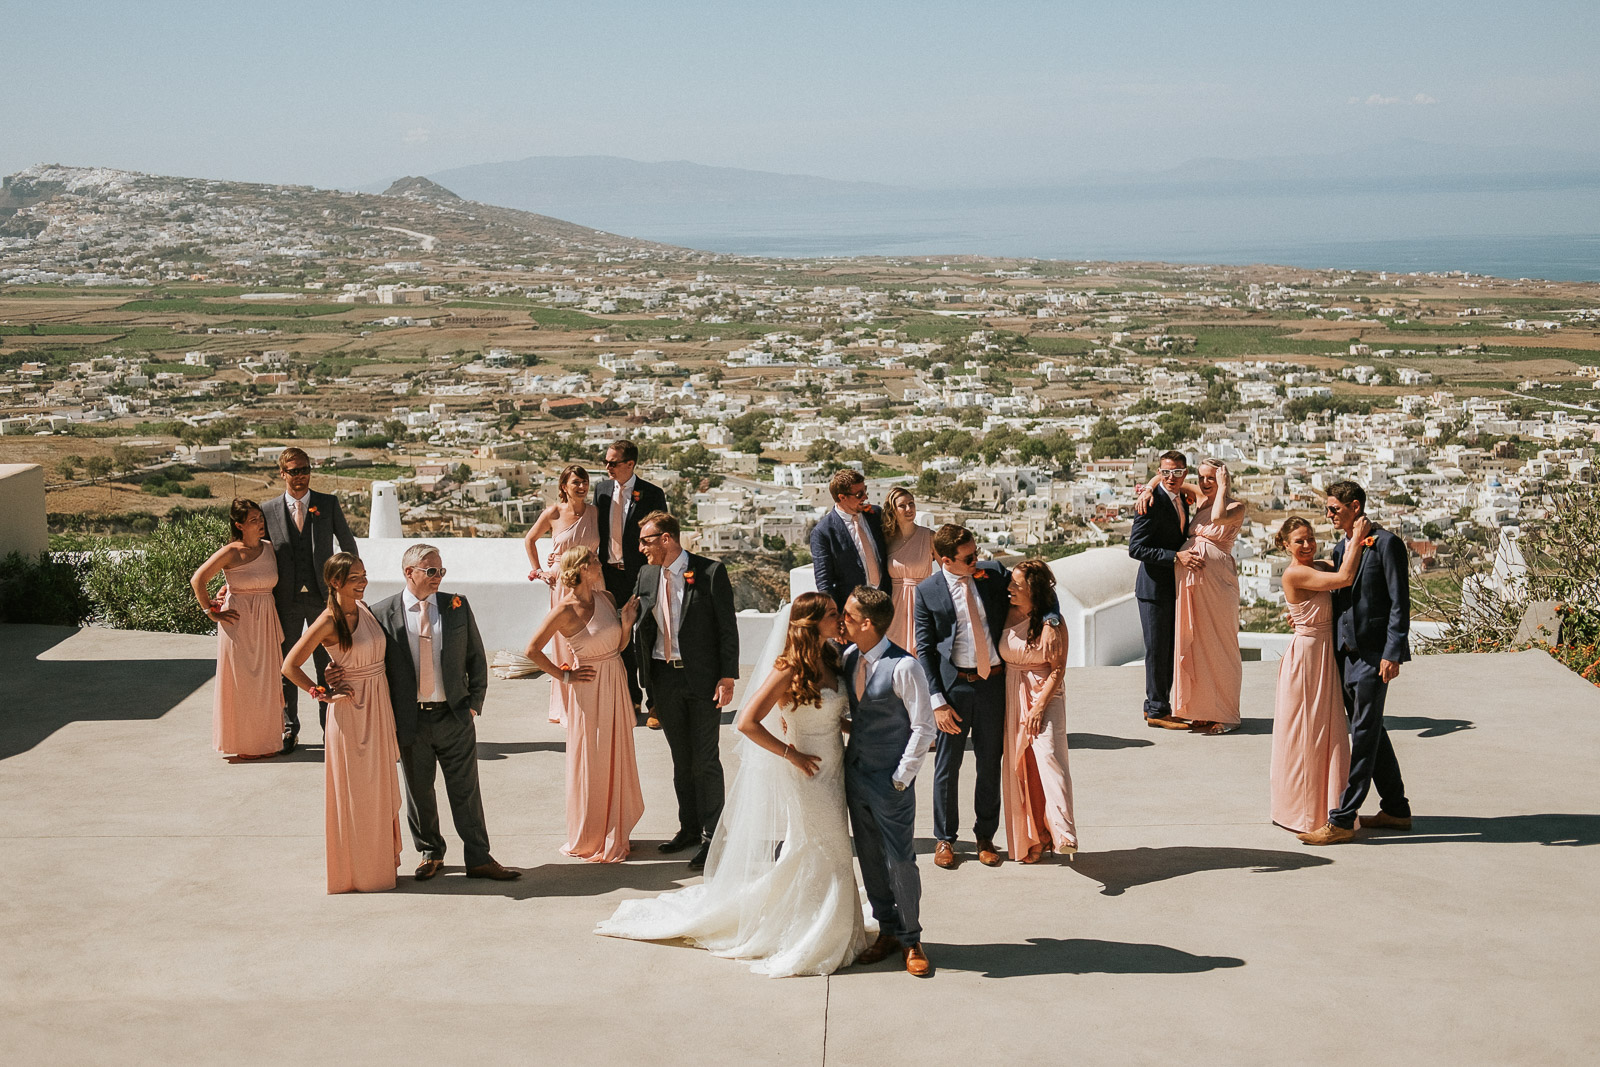 Santorini-Wedding-Photographer-Greece-Destination-Weddings-Mait-Juriado-M&J-Studios-041